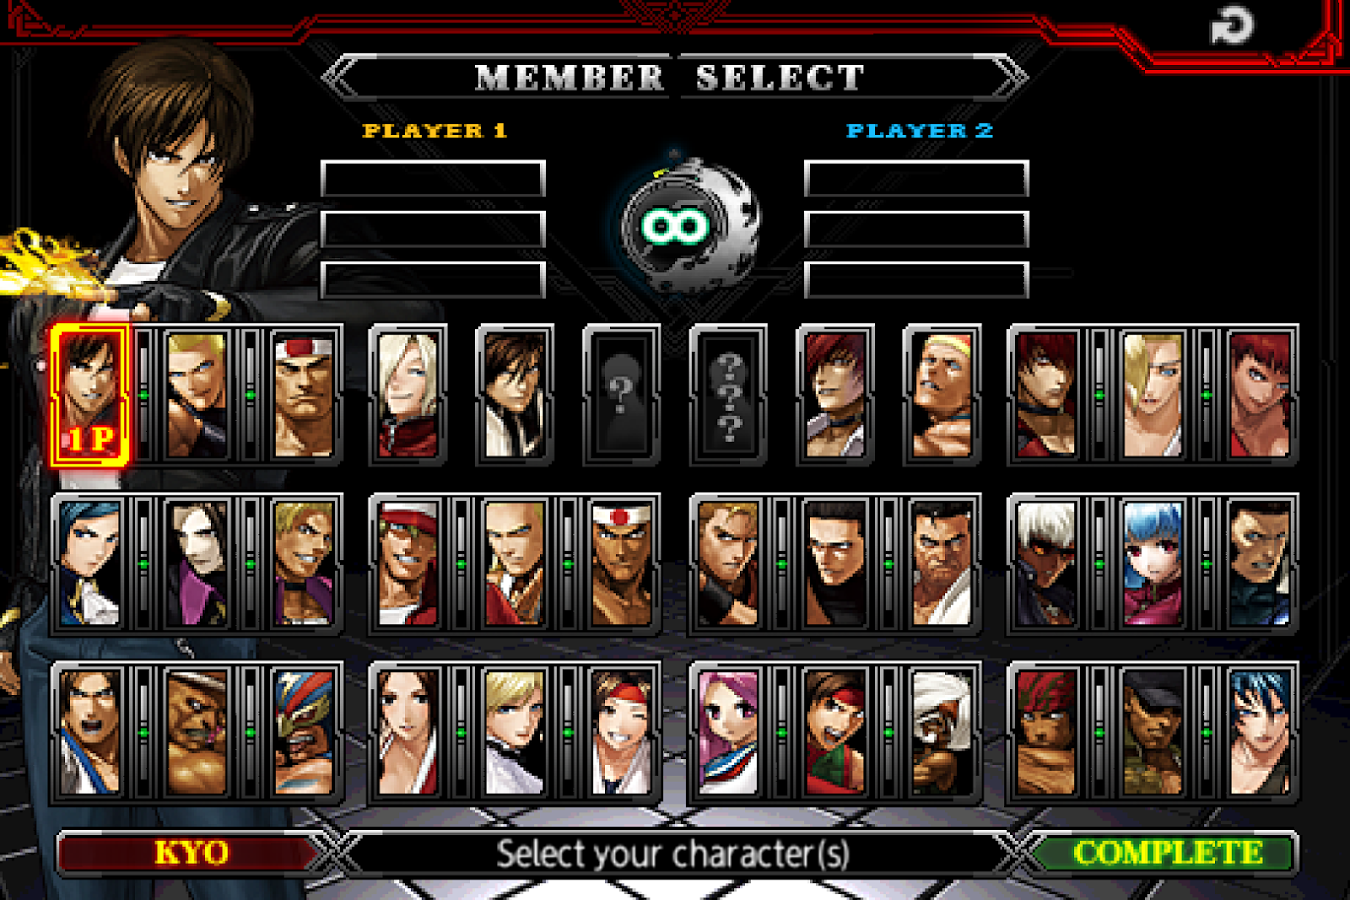 Download the king of fighters 10th android games apk 4407793.